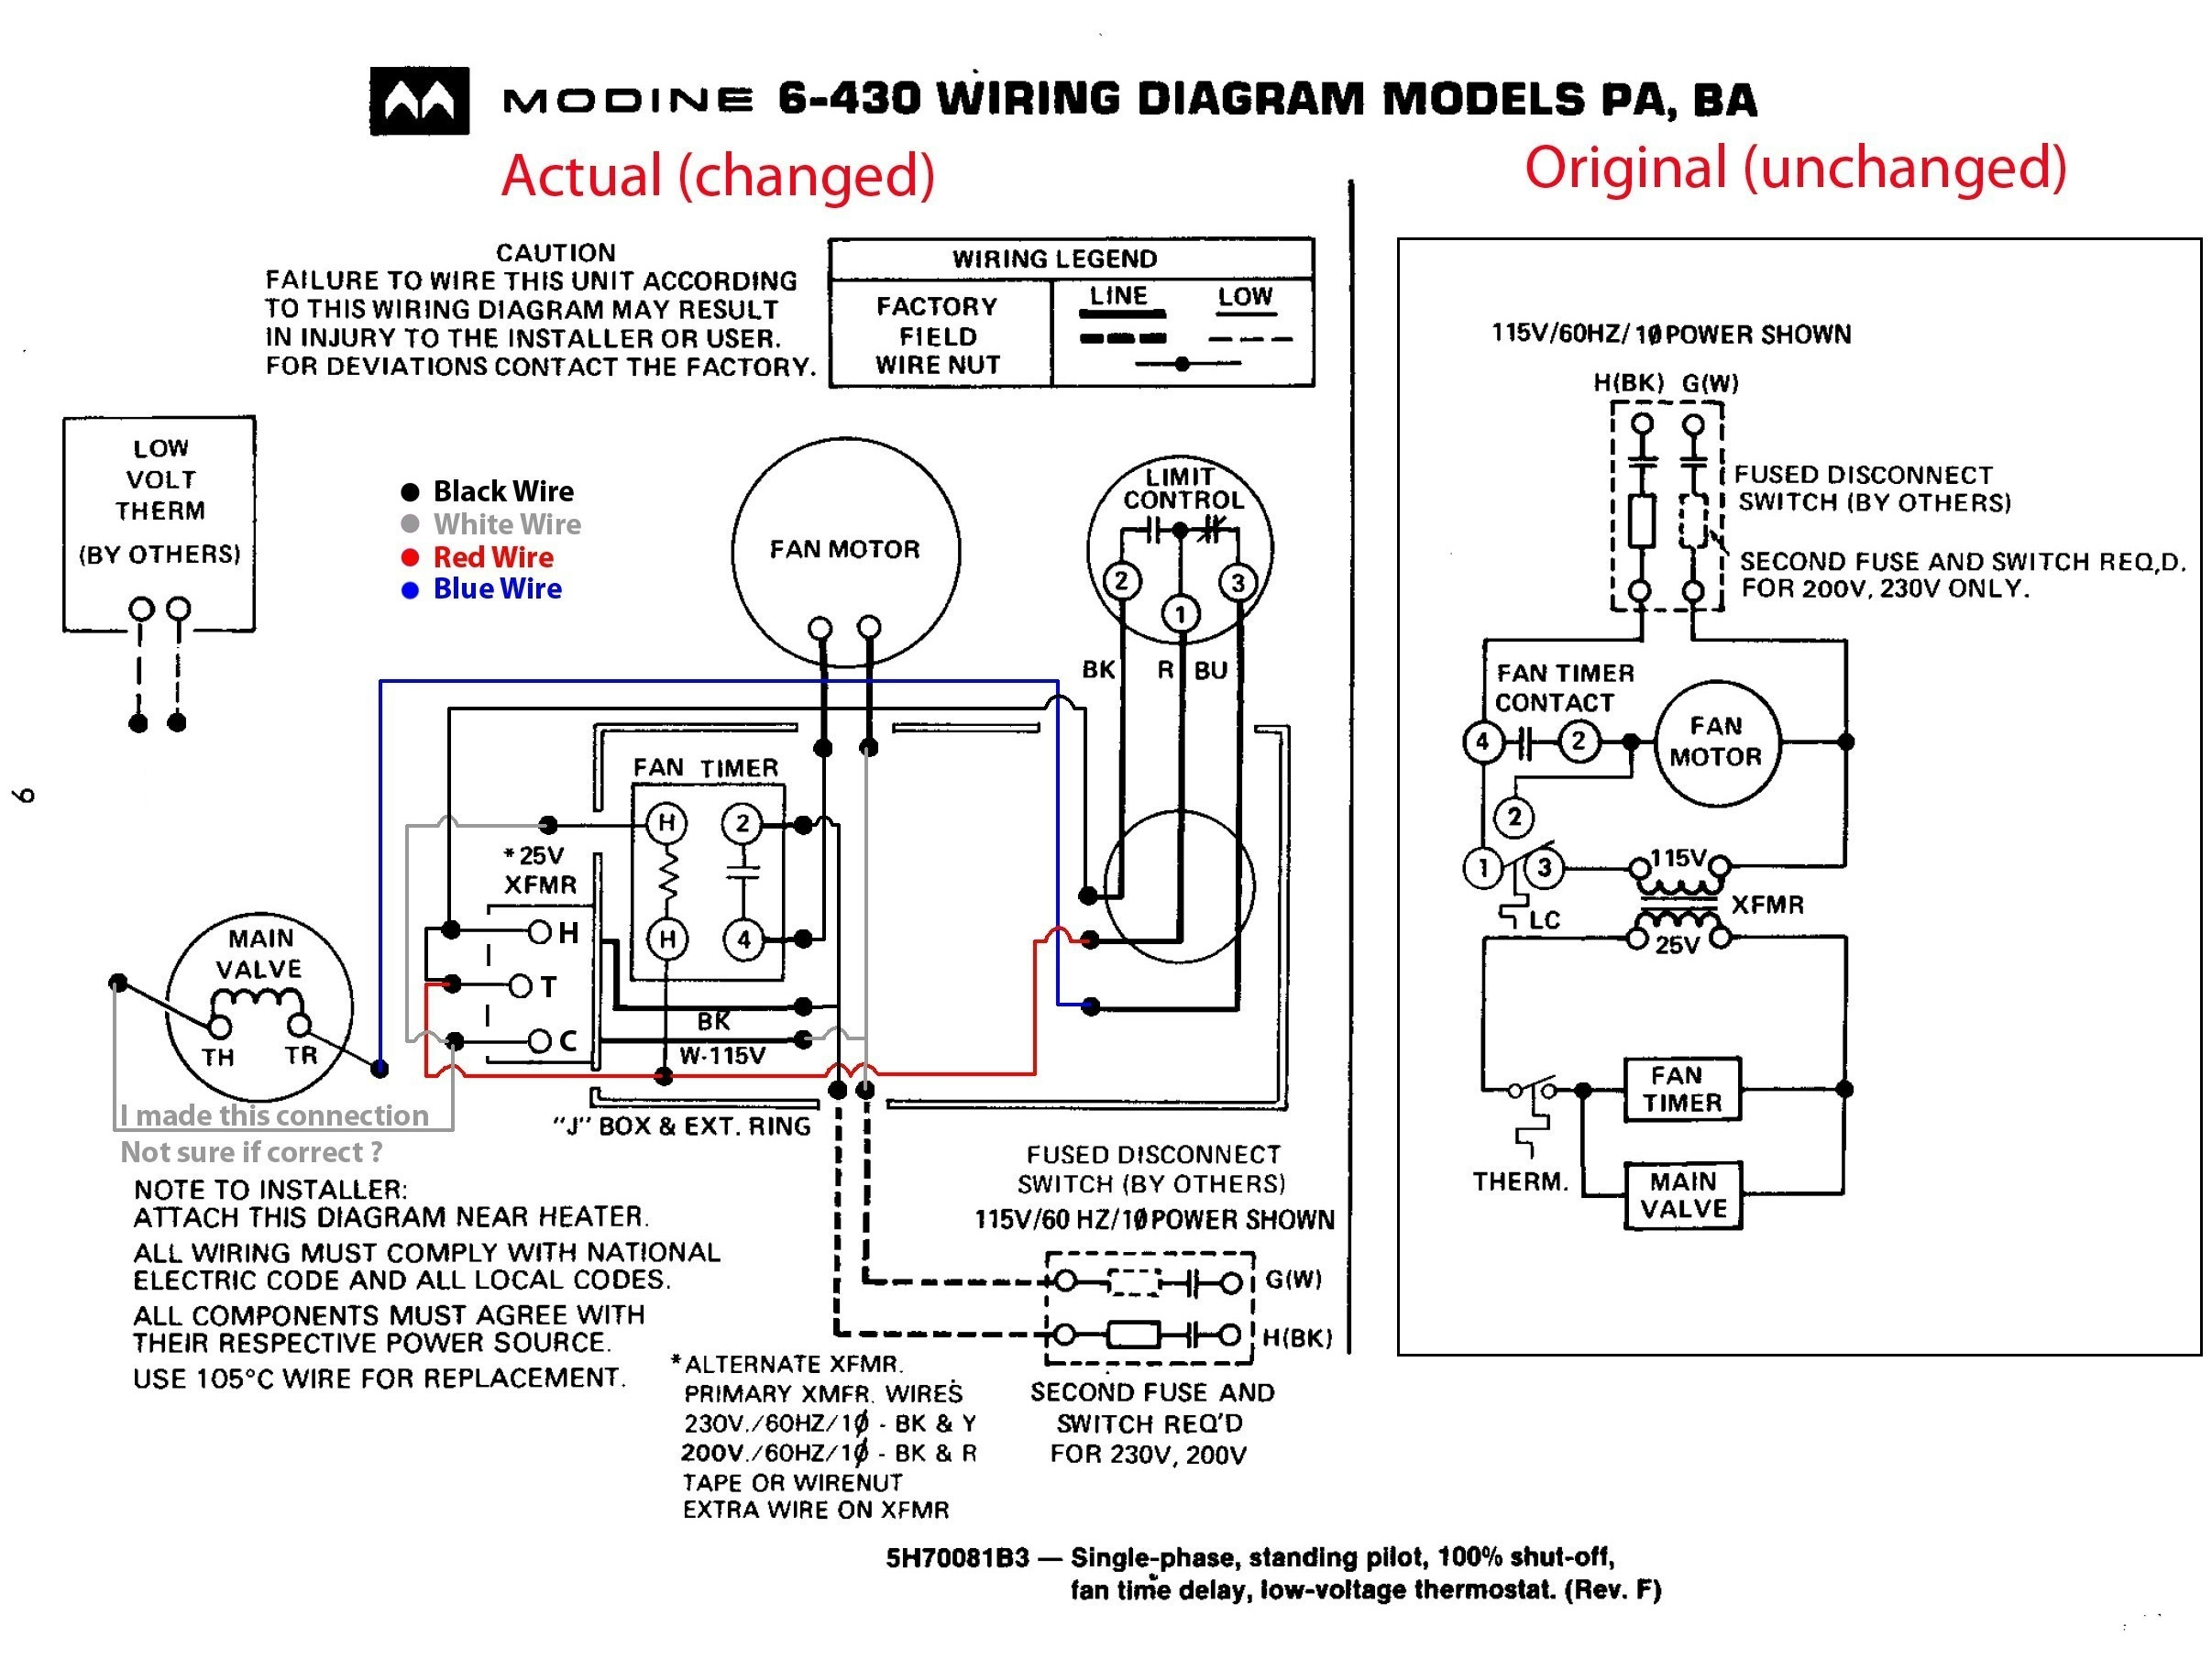 wiring diagram hunter ceiling fan    fan    control center    wiring       diagram    free    wiring       diagram    wiring diagram for hunter remote control ceiling fan    fan    control center    wiring       diagram    free    wiring       diagram